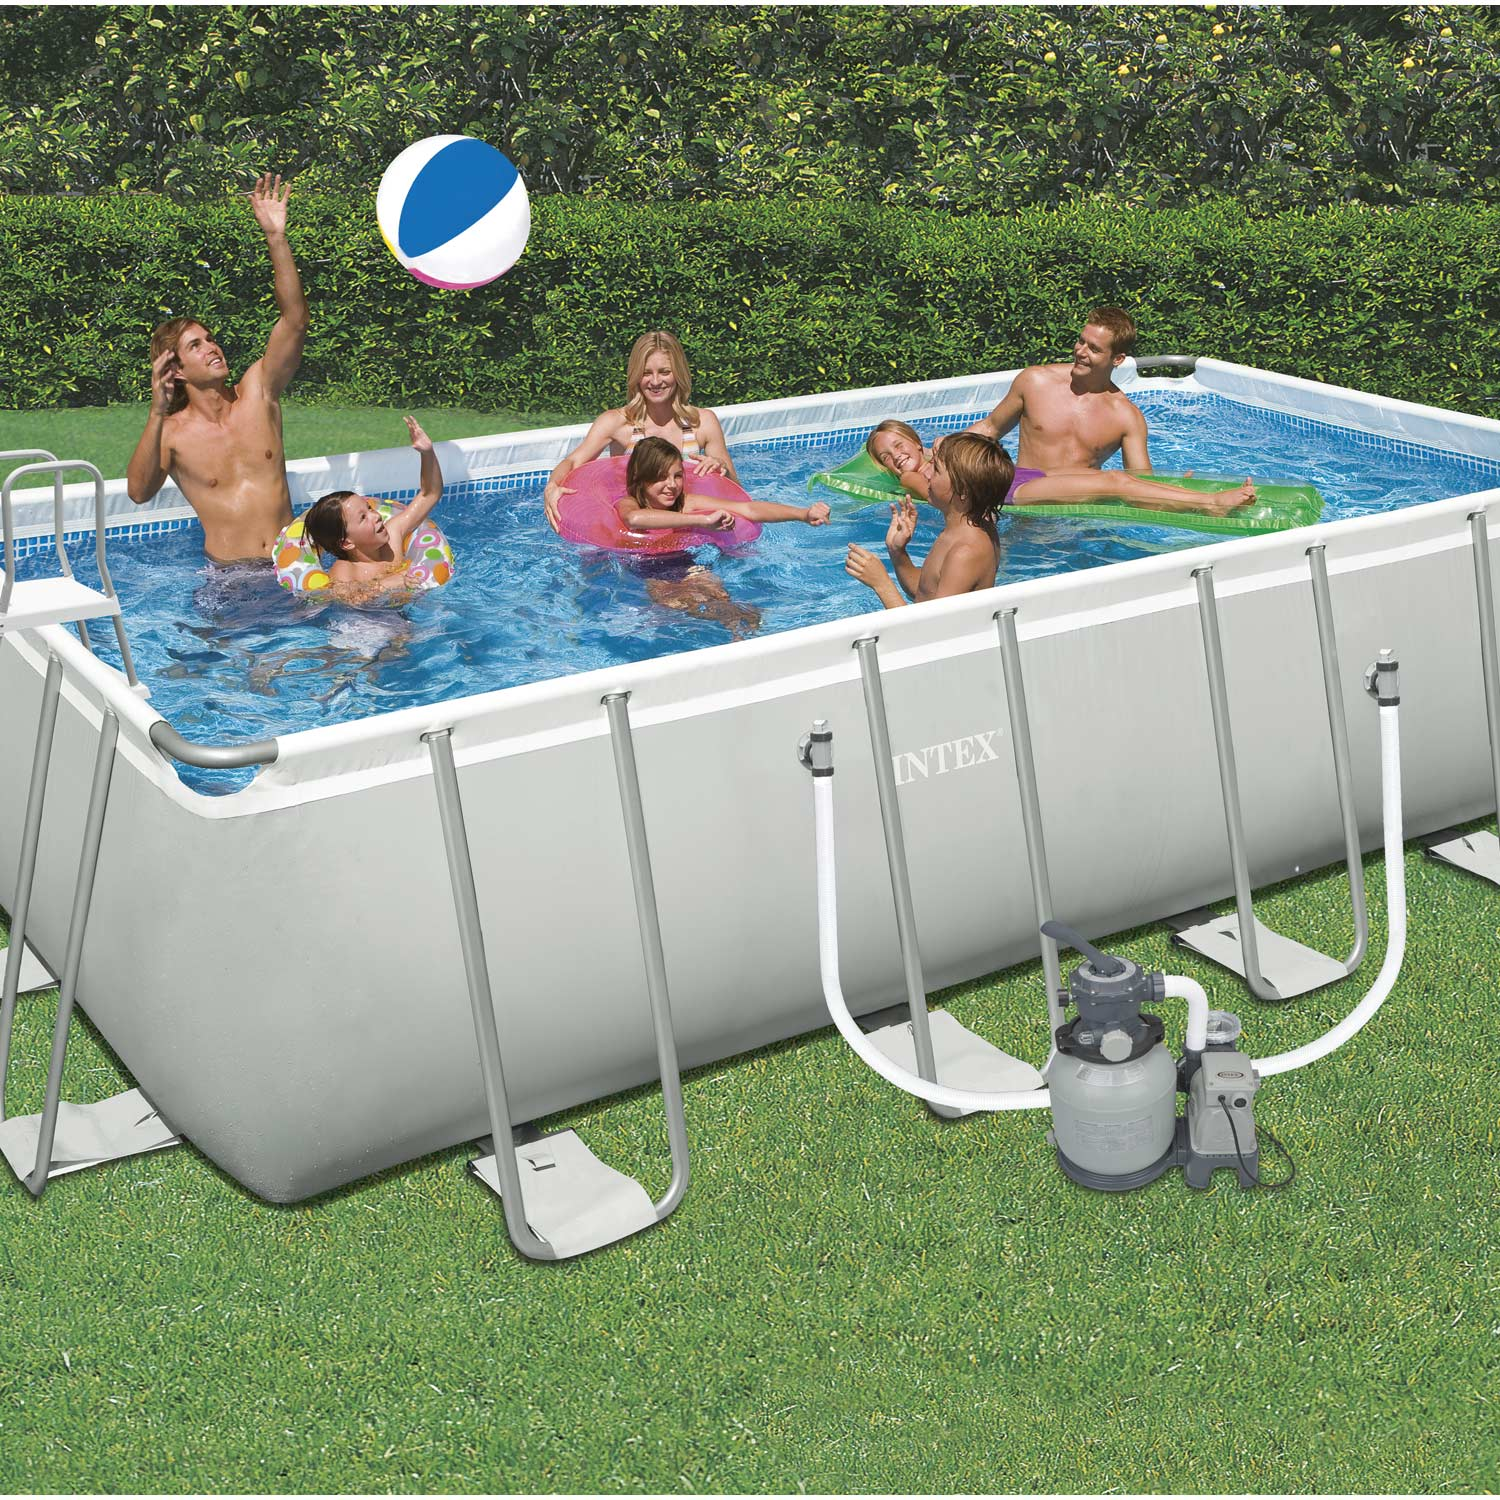 Piscine hors sol autoportante tubulaire intex l x l for Piscine autoportante